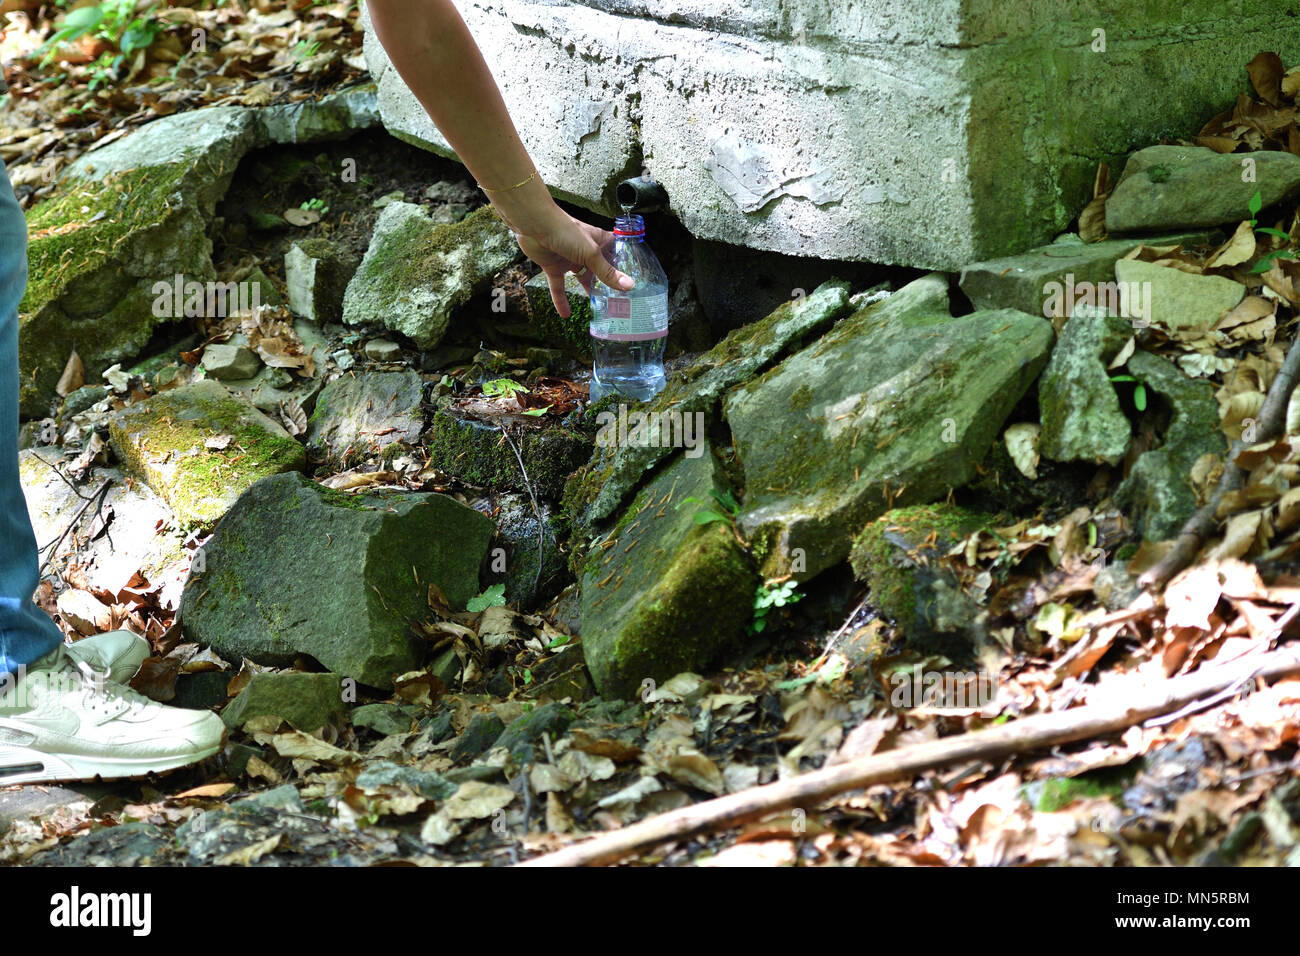 woman is pumping fresh forest water - Stock Image